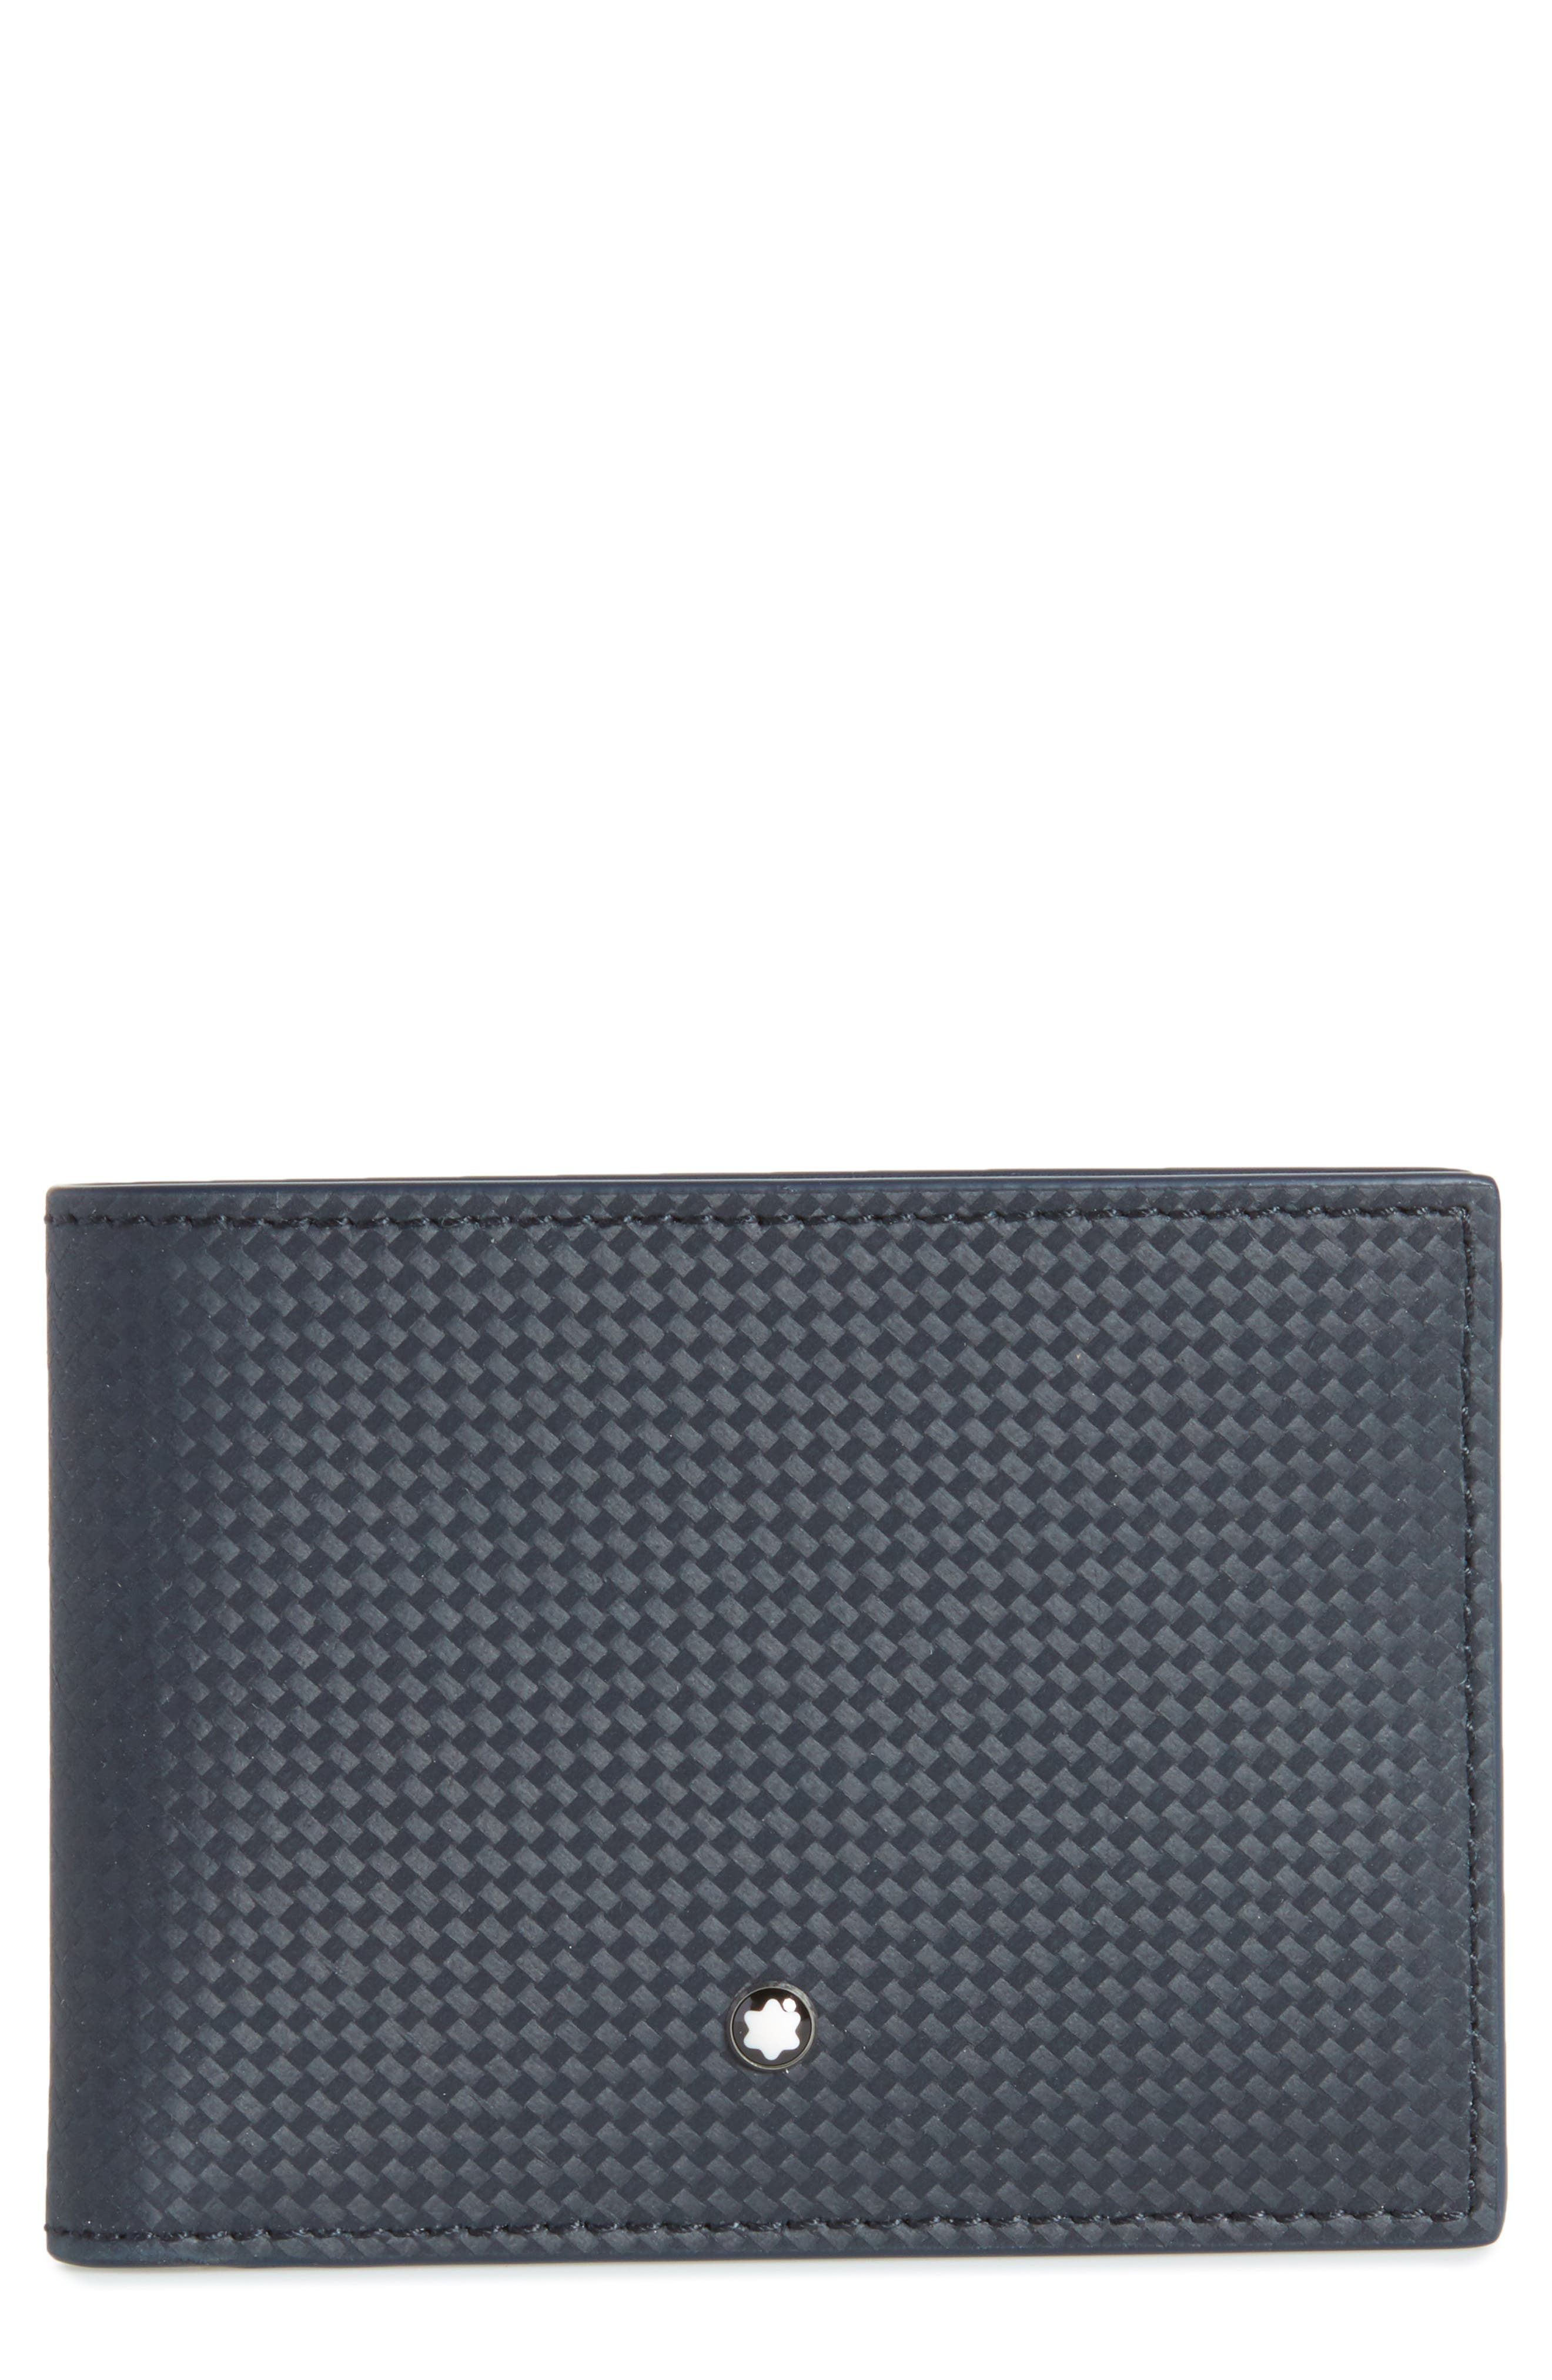 Extreme Bifold Leather Wallet,                             Main thumbnail 1, color,                             BLUE